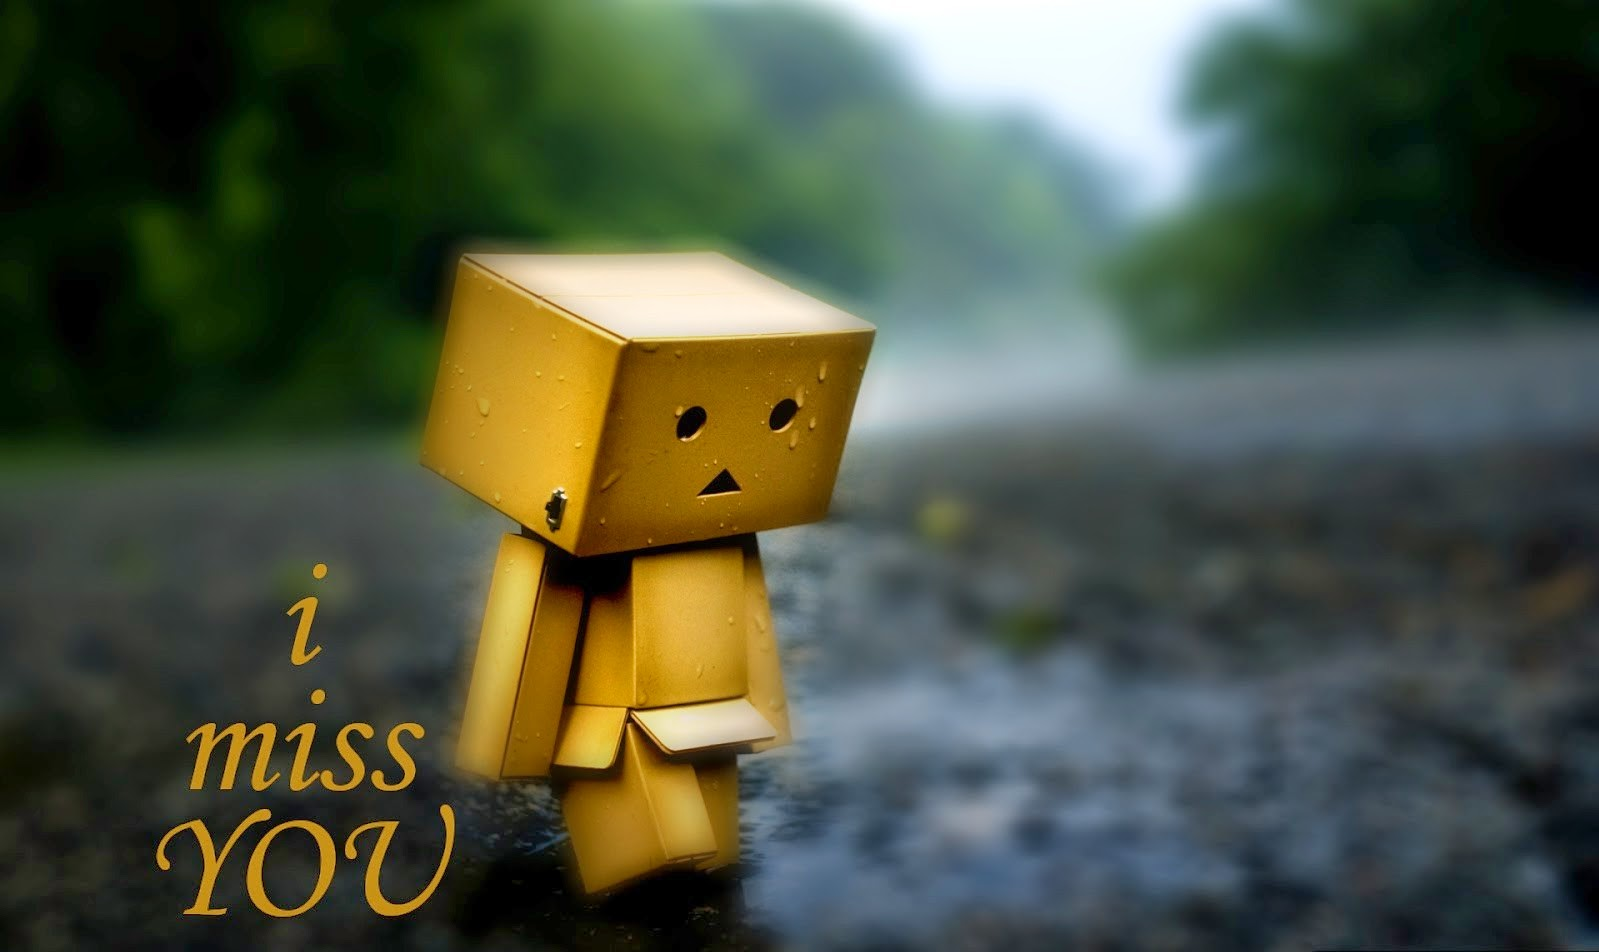 I Miss You HD Wallpapers | HD Wallpapers | Download Free High Definition Desktop / PC Wallpapers